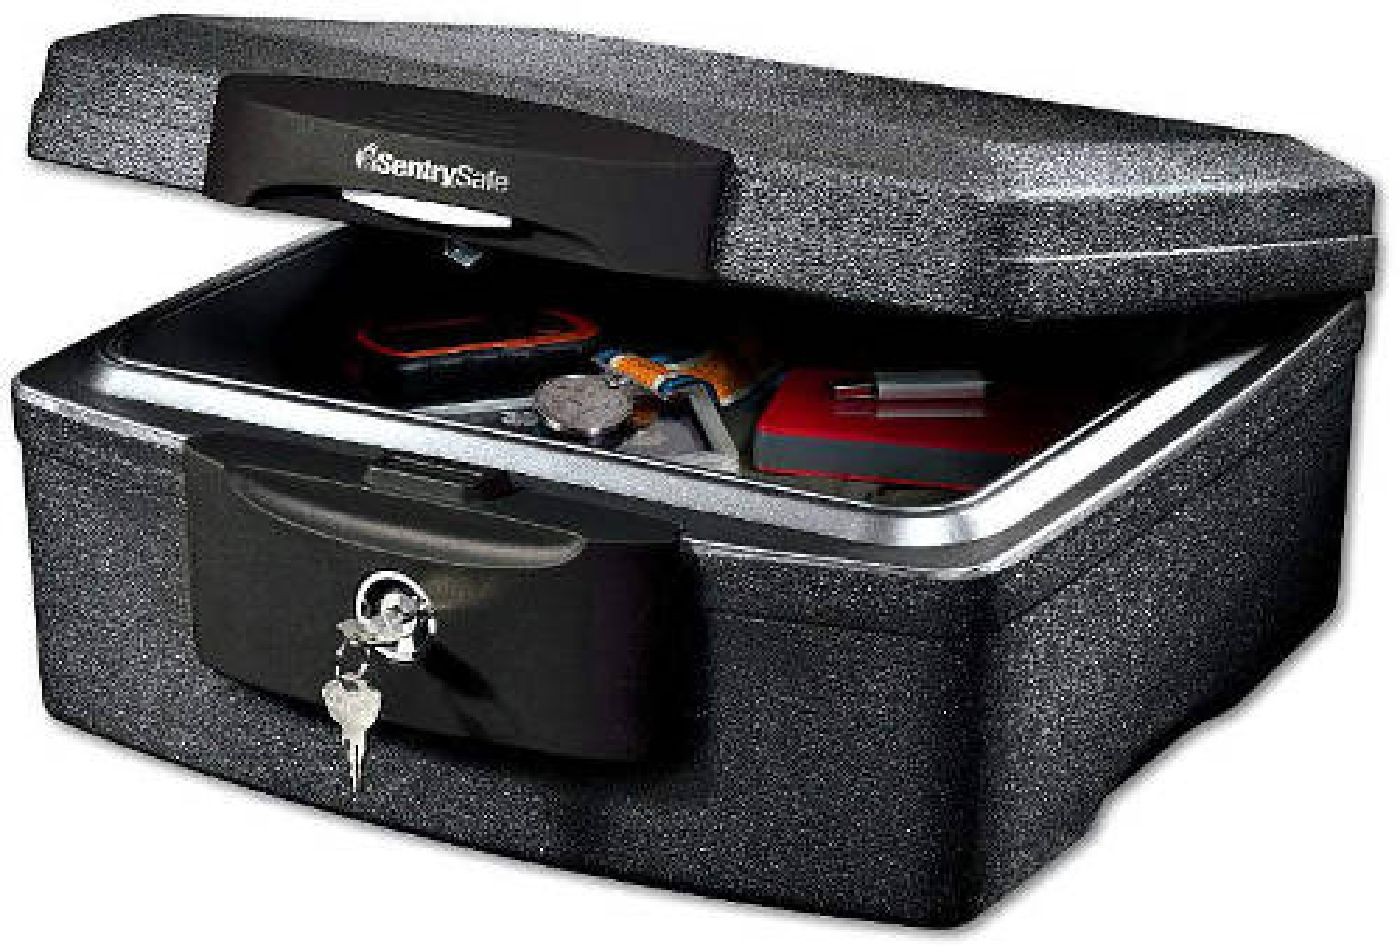 Image of a portable safe